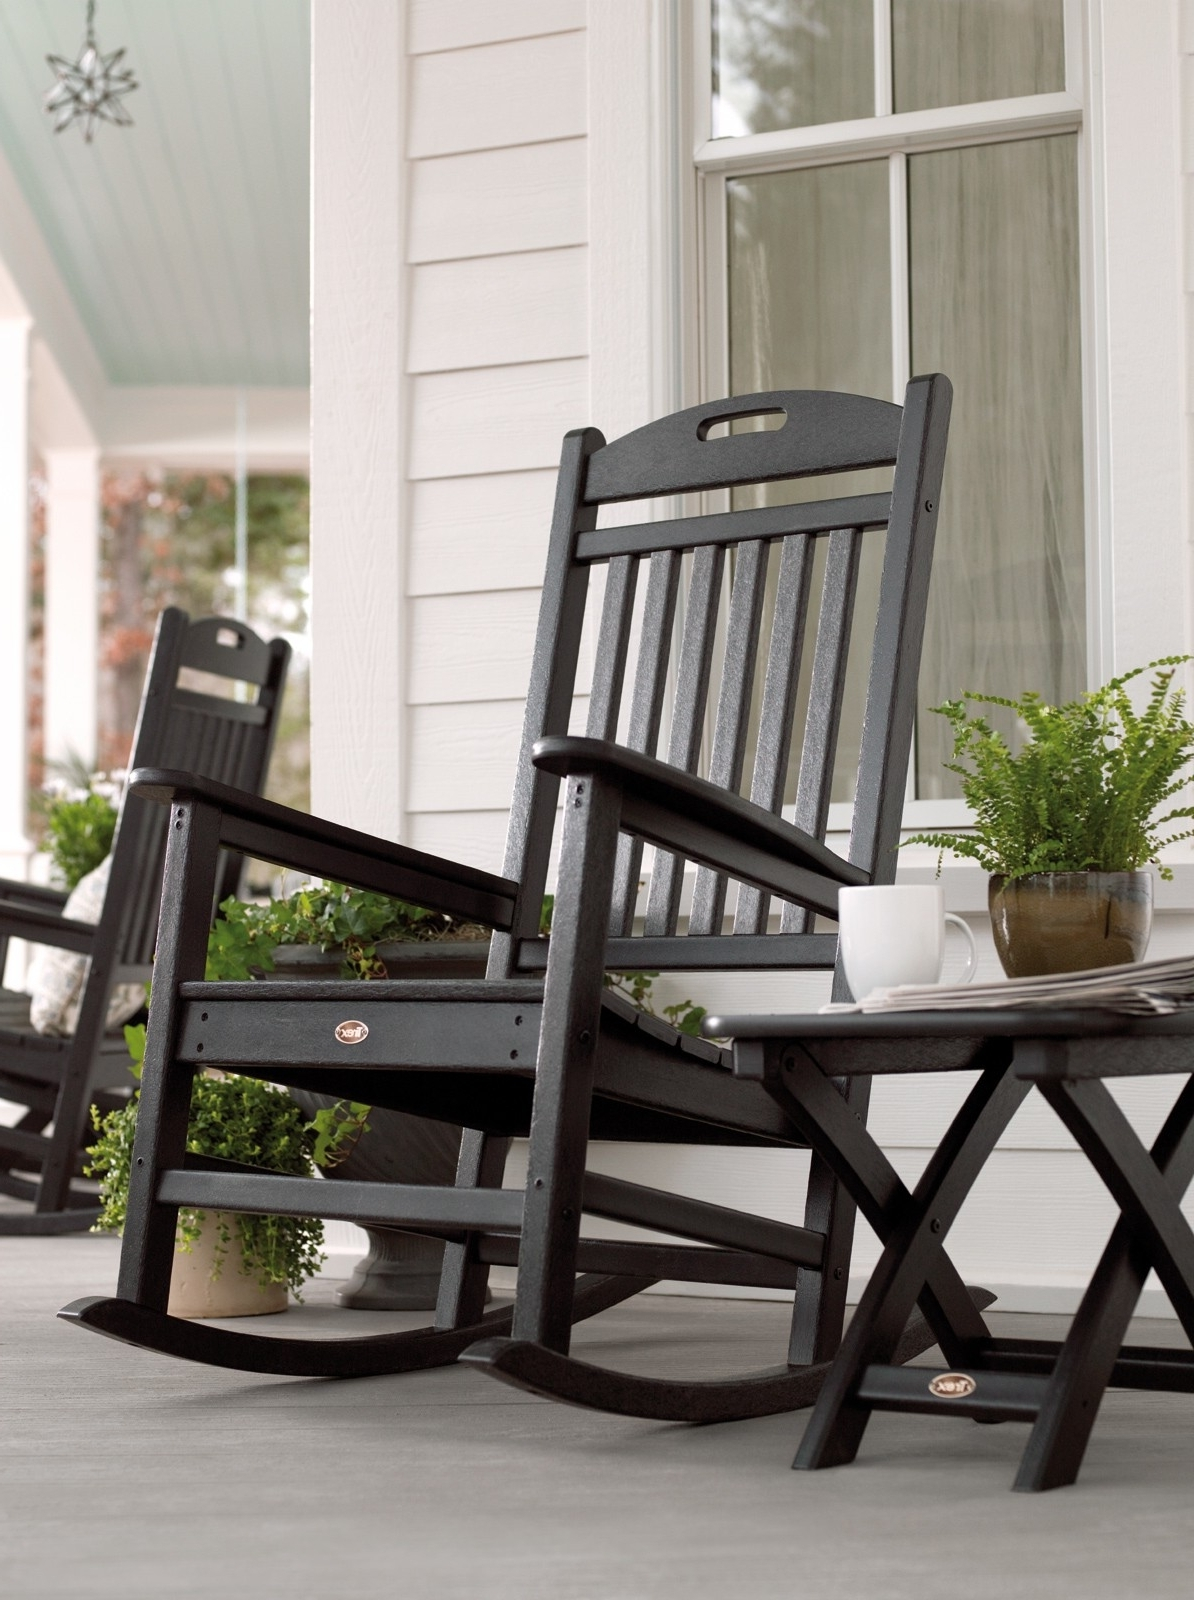 Latest Black Patio Rocking Chairs With Regard To Patio & Garden : Outdoor Rocking Chair Seat Cushions Outdoor Rocking (View 7 of 15)